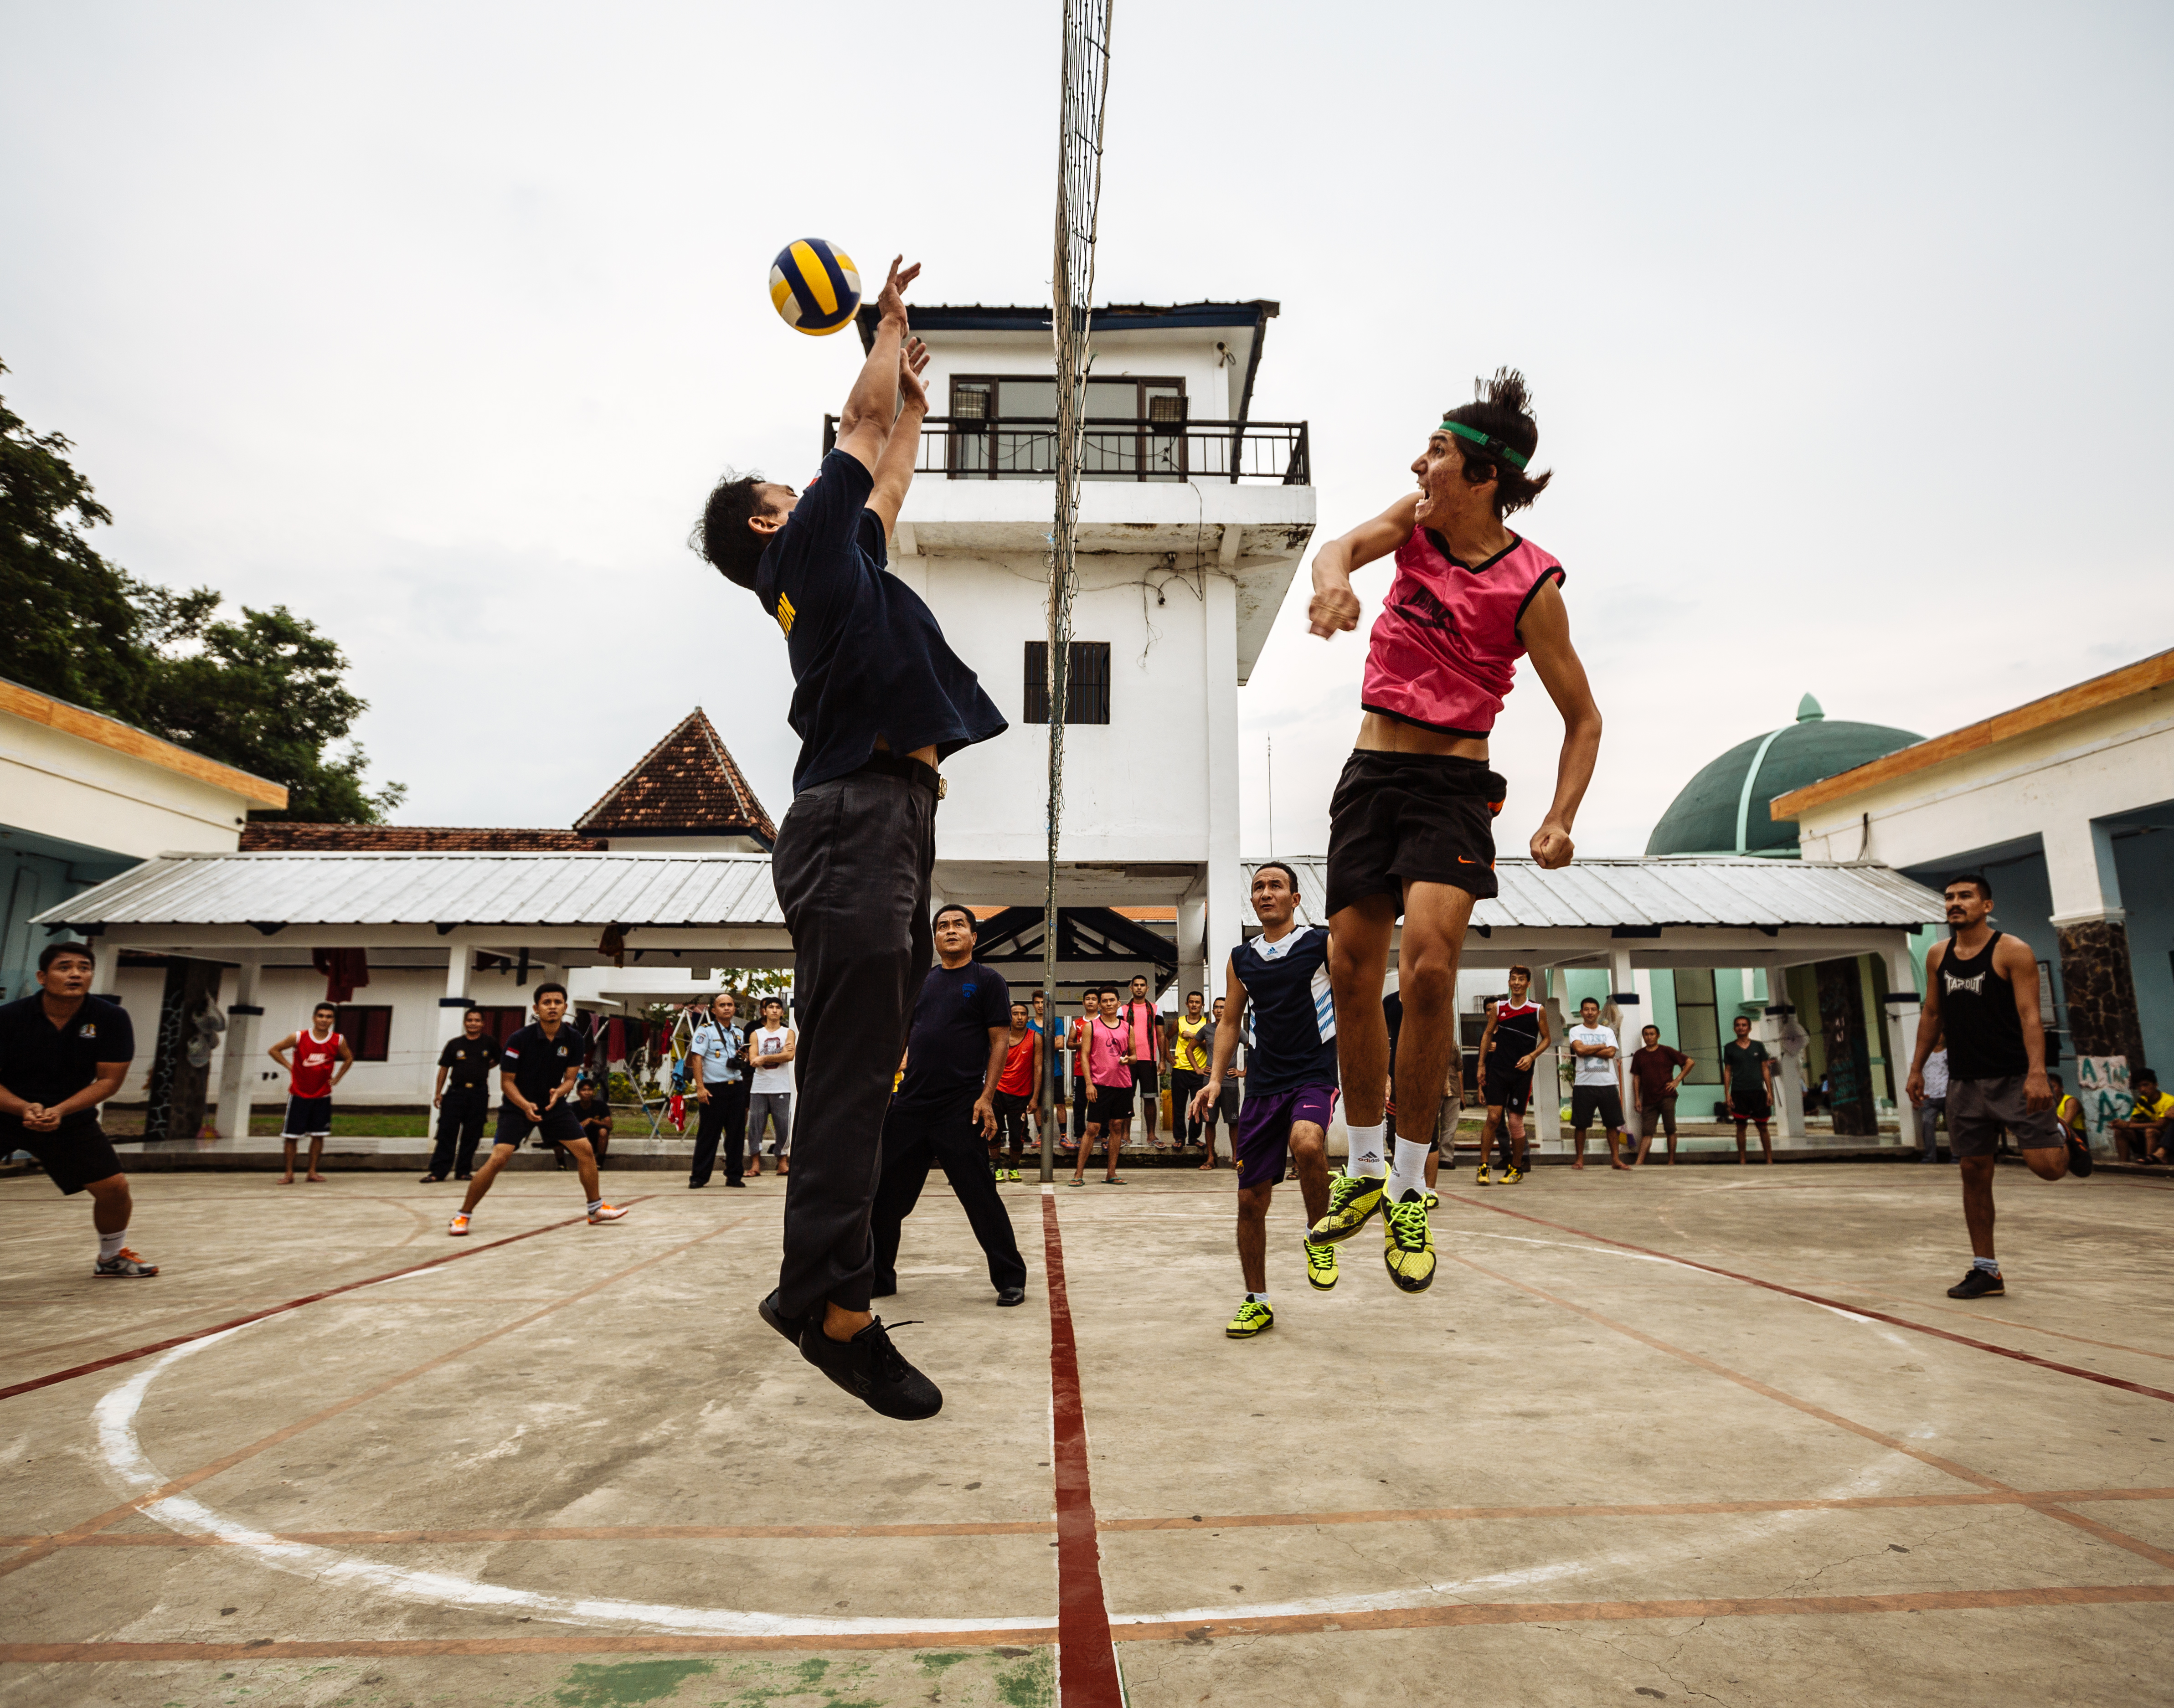 Afghan refugees face off against Indonesian immigration officers in a friendly volleyball match in Java, Indonesia. Many of the asylum seekers have been waiting for years to be processed and approved for resettlement. Until the day comes for them to be resettled, they try to keep their spirits up through various recreational activities.